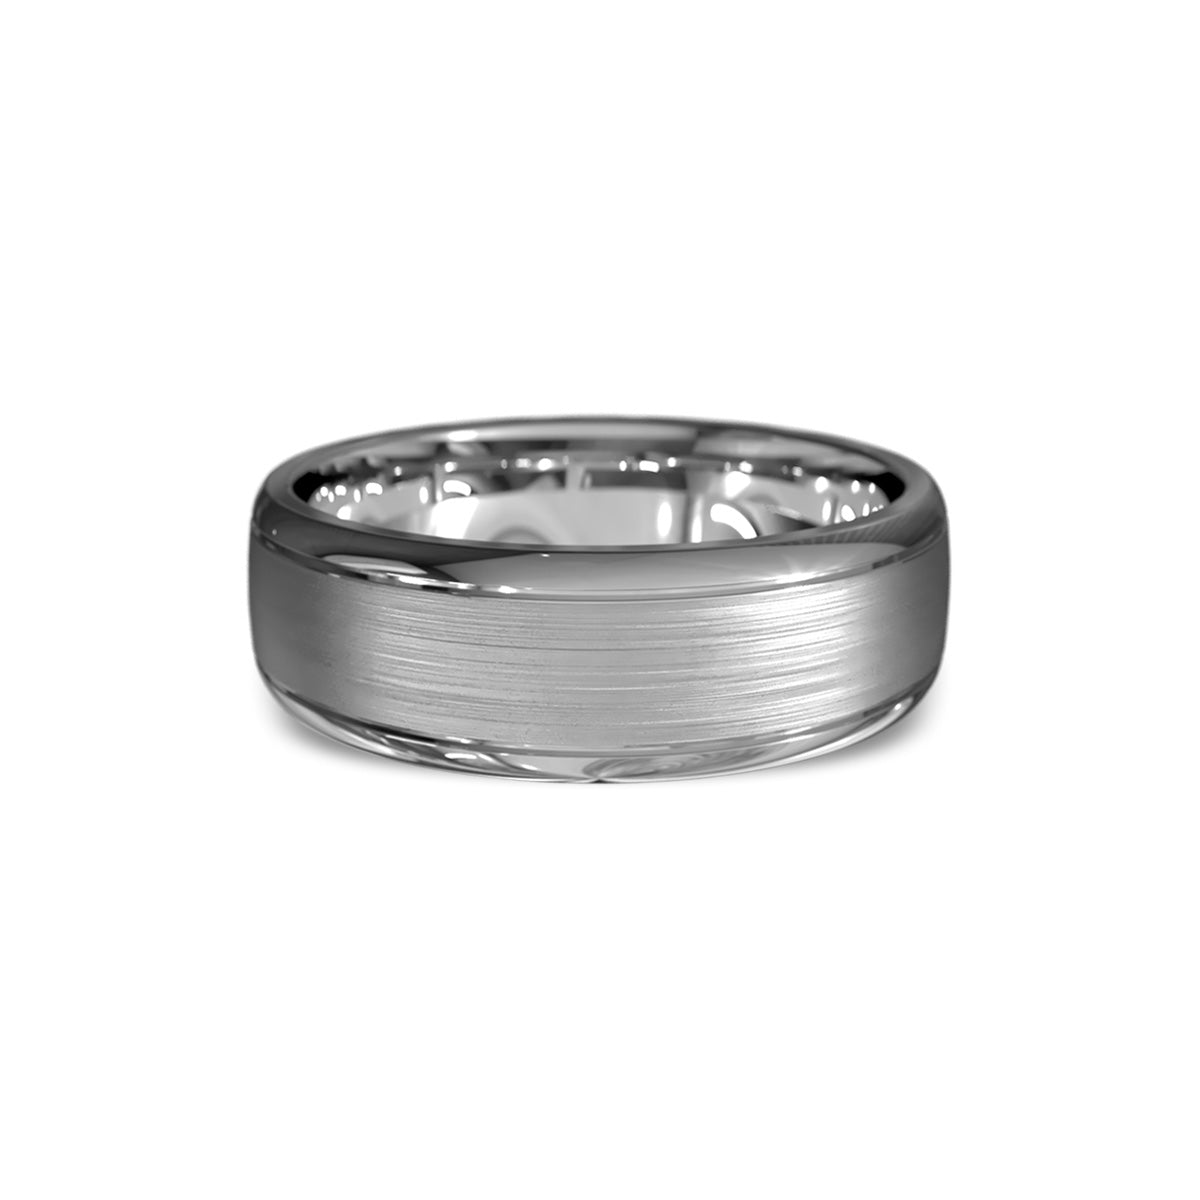 Contemporary-mens-wedding-ring-Sydney-jeweller-Lizunova-Fine-Jewels-Chifley-Square